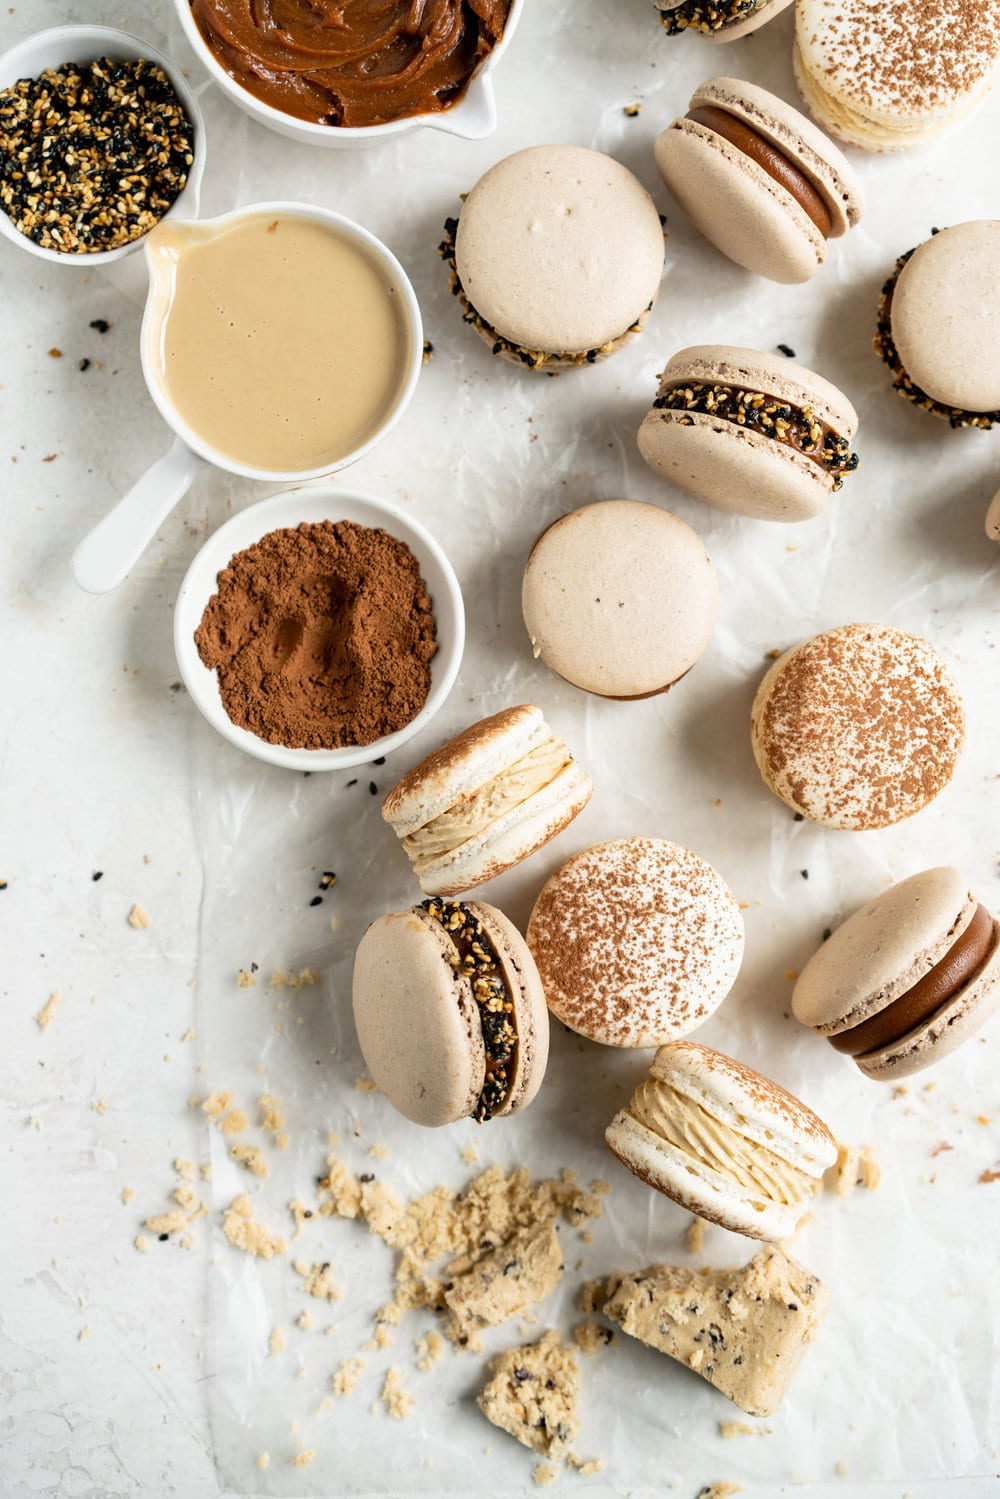 Sesame Macarons Two Ways - Chocolate Macarons with Salted Caramel Tahini Milk Chocolate Ganache and Sesame Brittle, and Vanilla Bean Macarons with Coffee German Buttercream and Halva. These two 'variations on a theme' show off the amazing versatility of tahini - a silky tahini chocolate ganache, and a halva stuffed macaron. #frenchmacarons #glutenfree #macarons